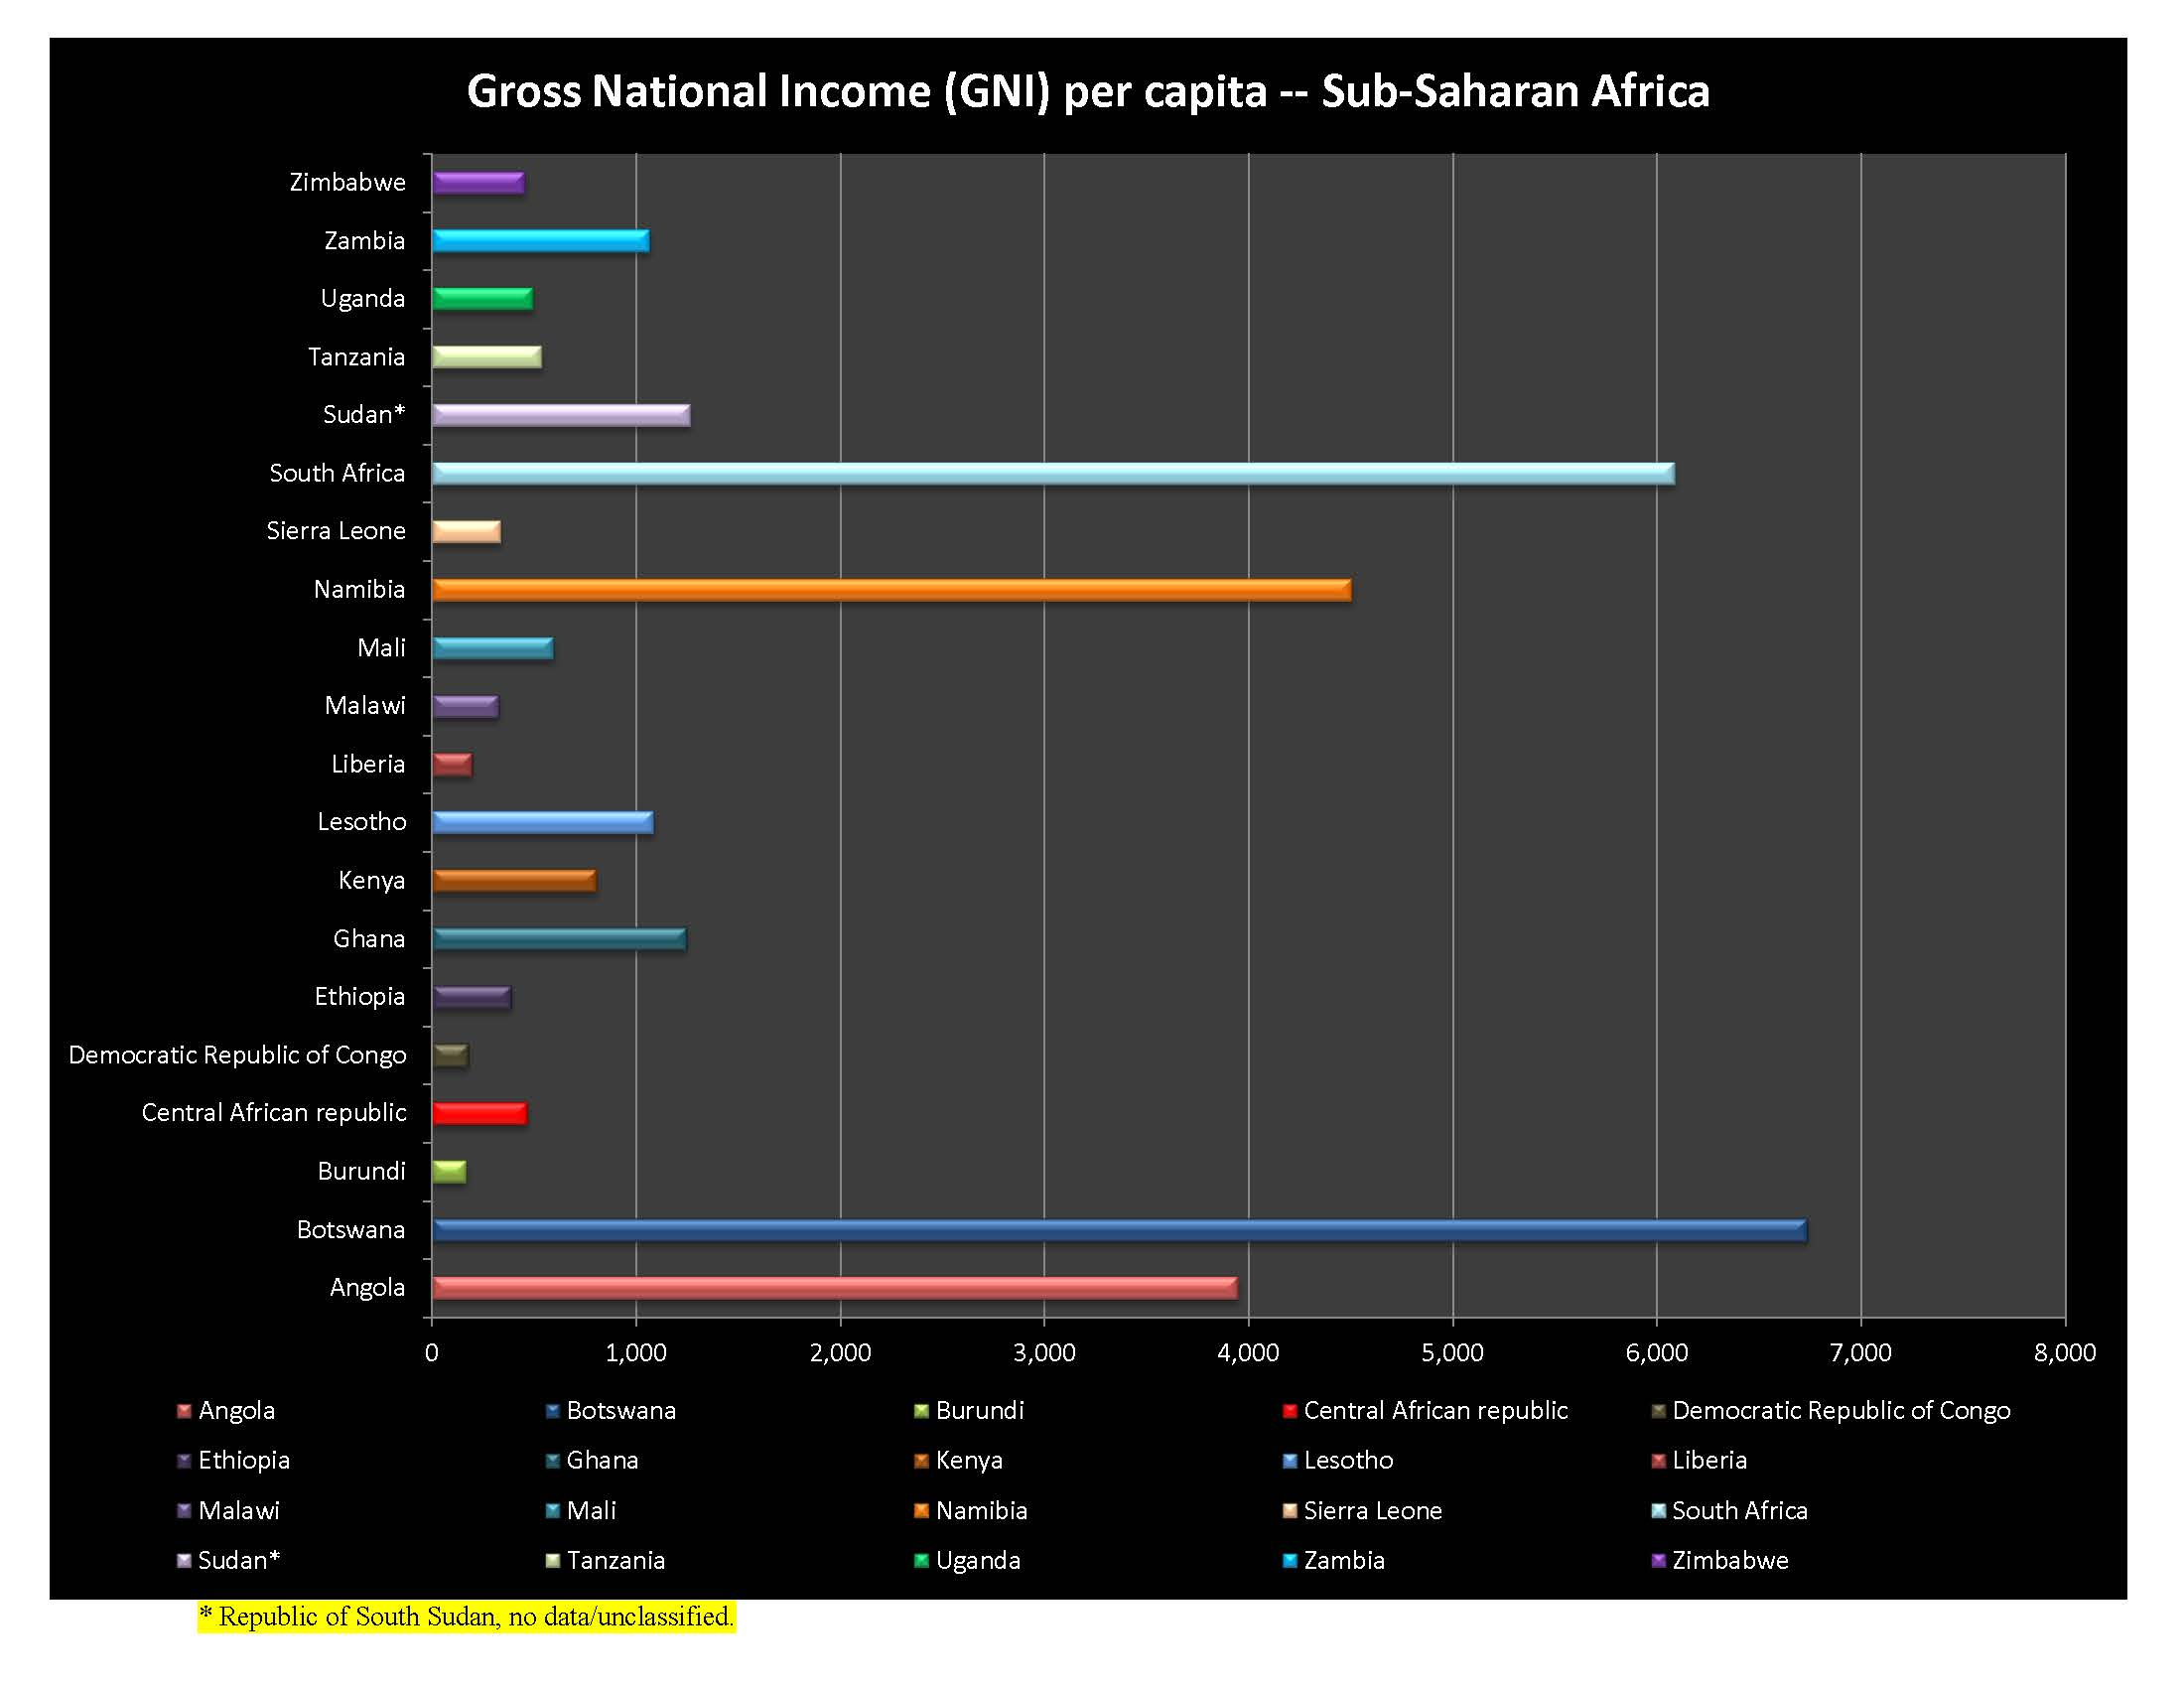 Gross National Income Chart for sub-Saharan Africa 2012